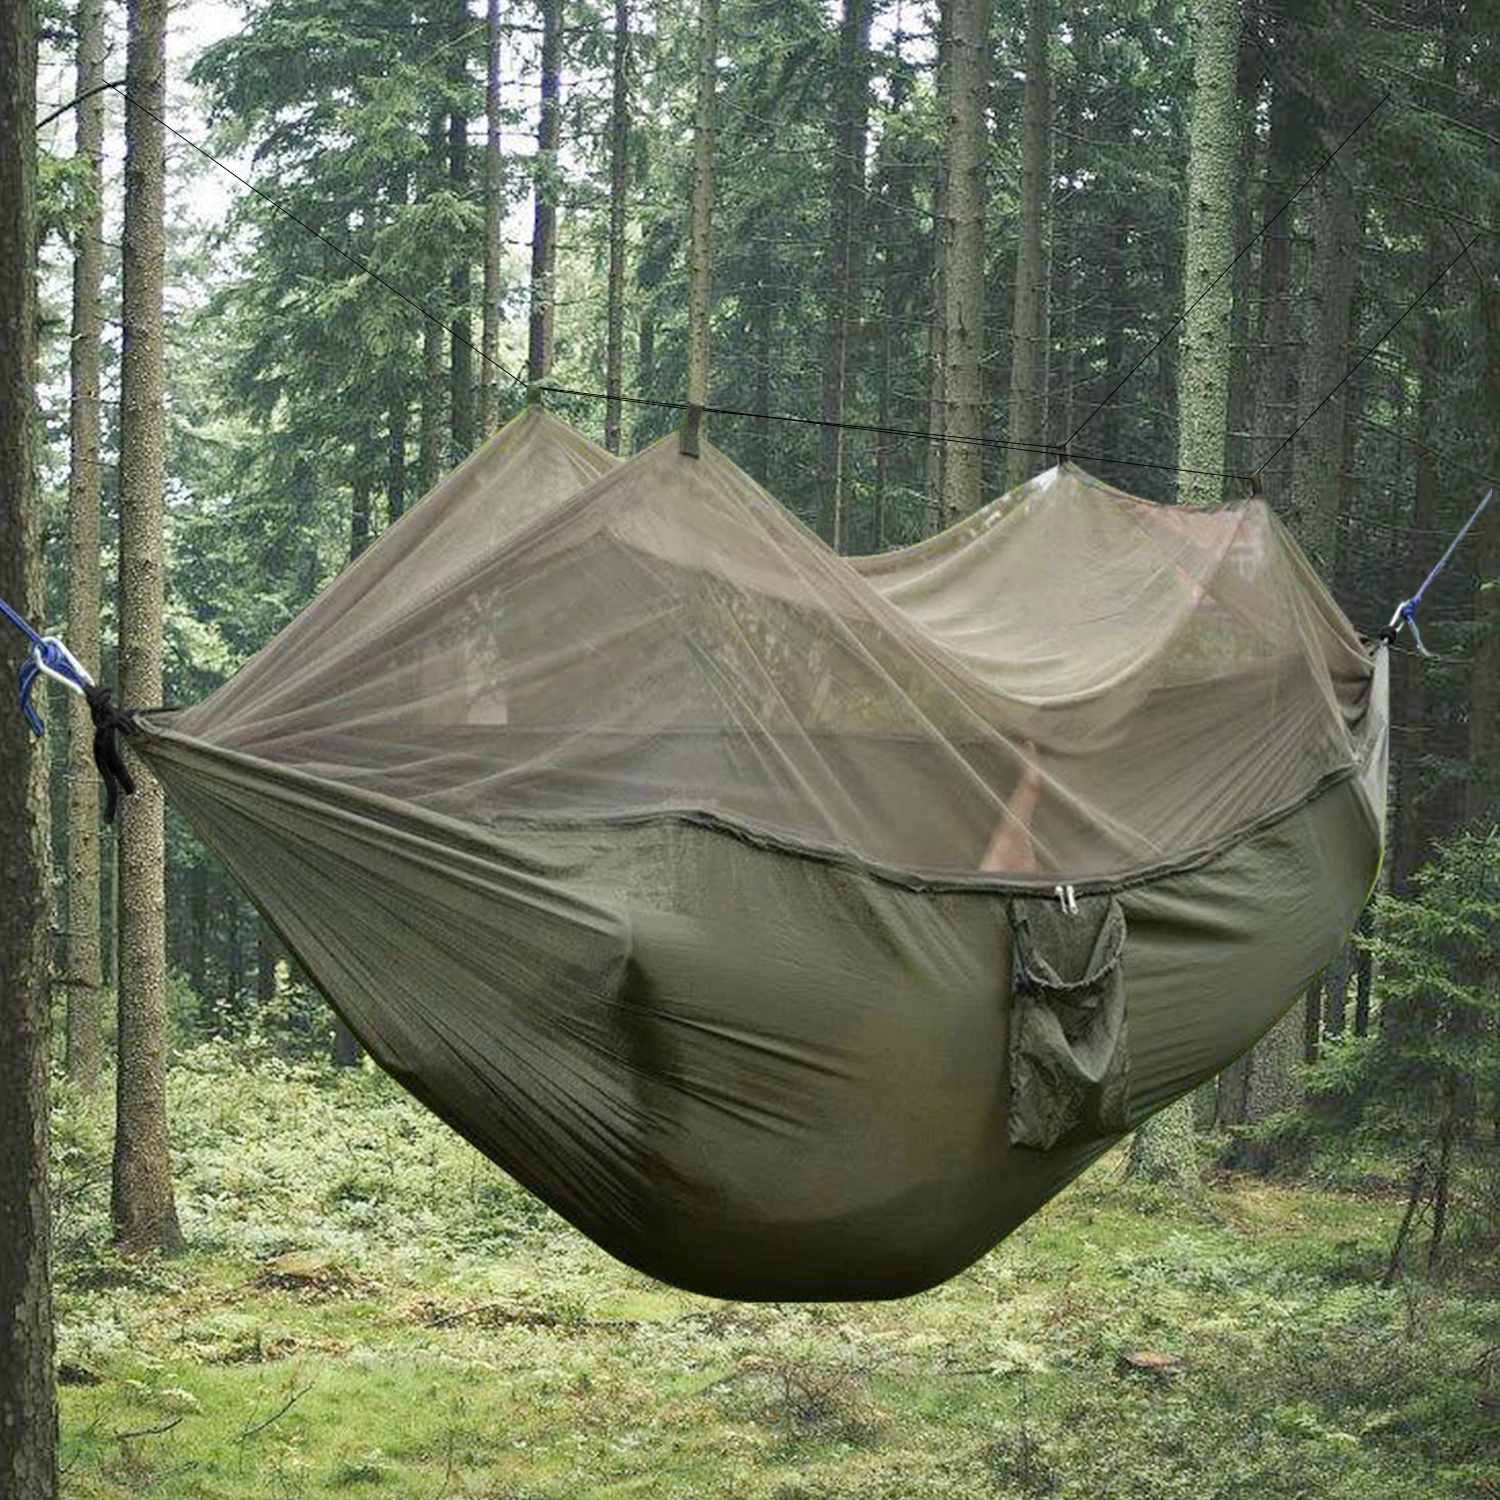 Camping Nylon Hammock With Mosquito Net Army Green